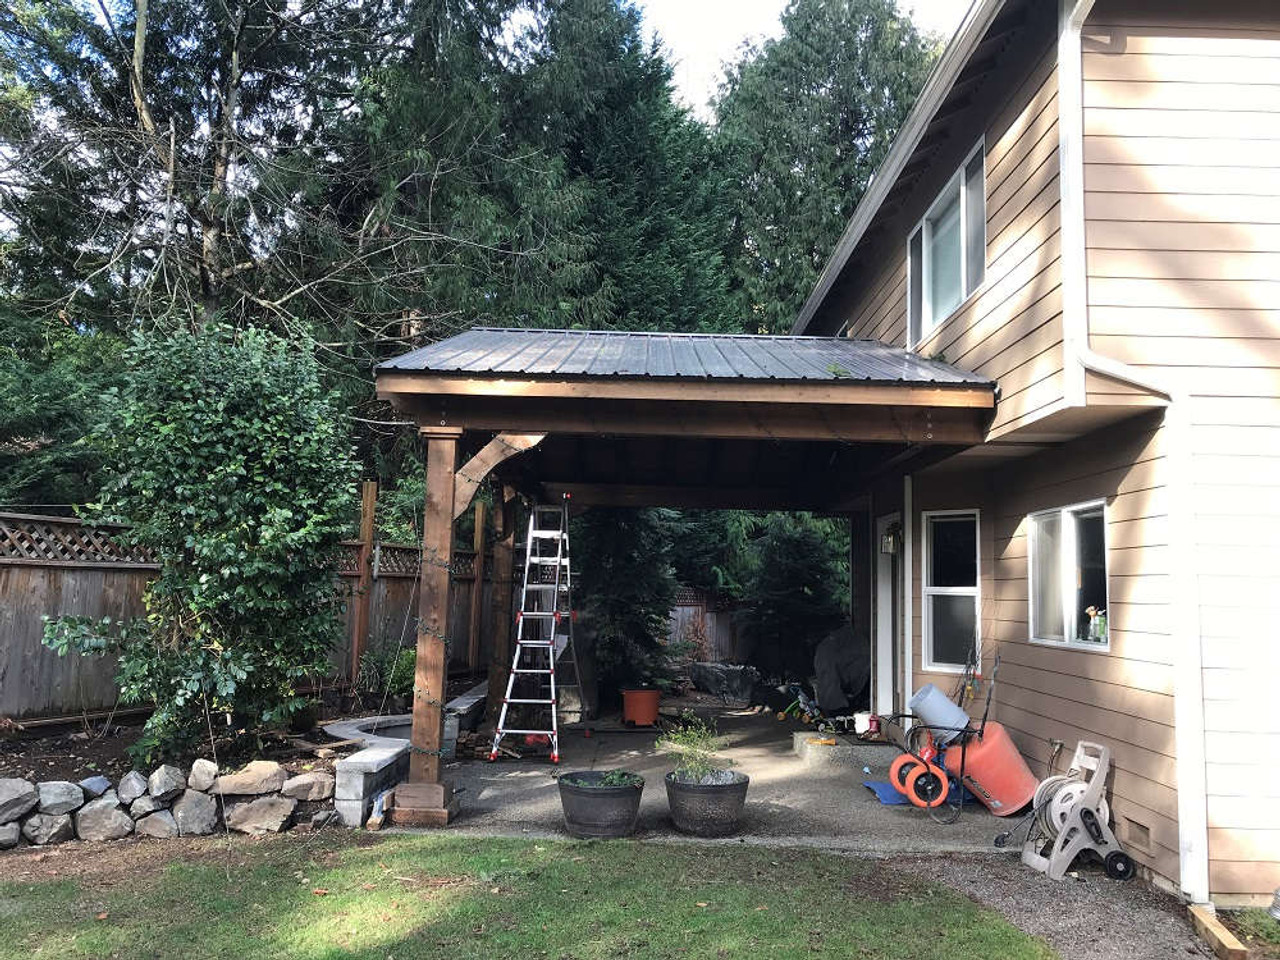 15x26 roof span Grand Cedar Pavilion Kit Wall-Mounted, Bothell, WA